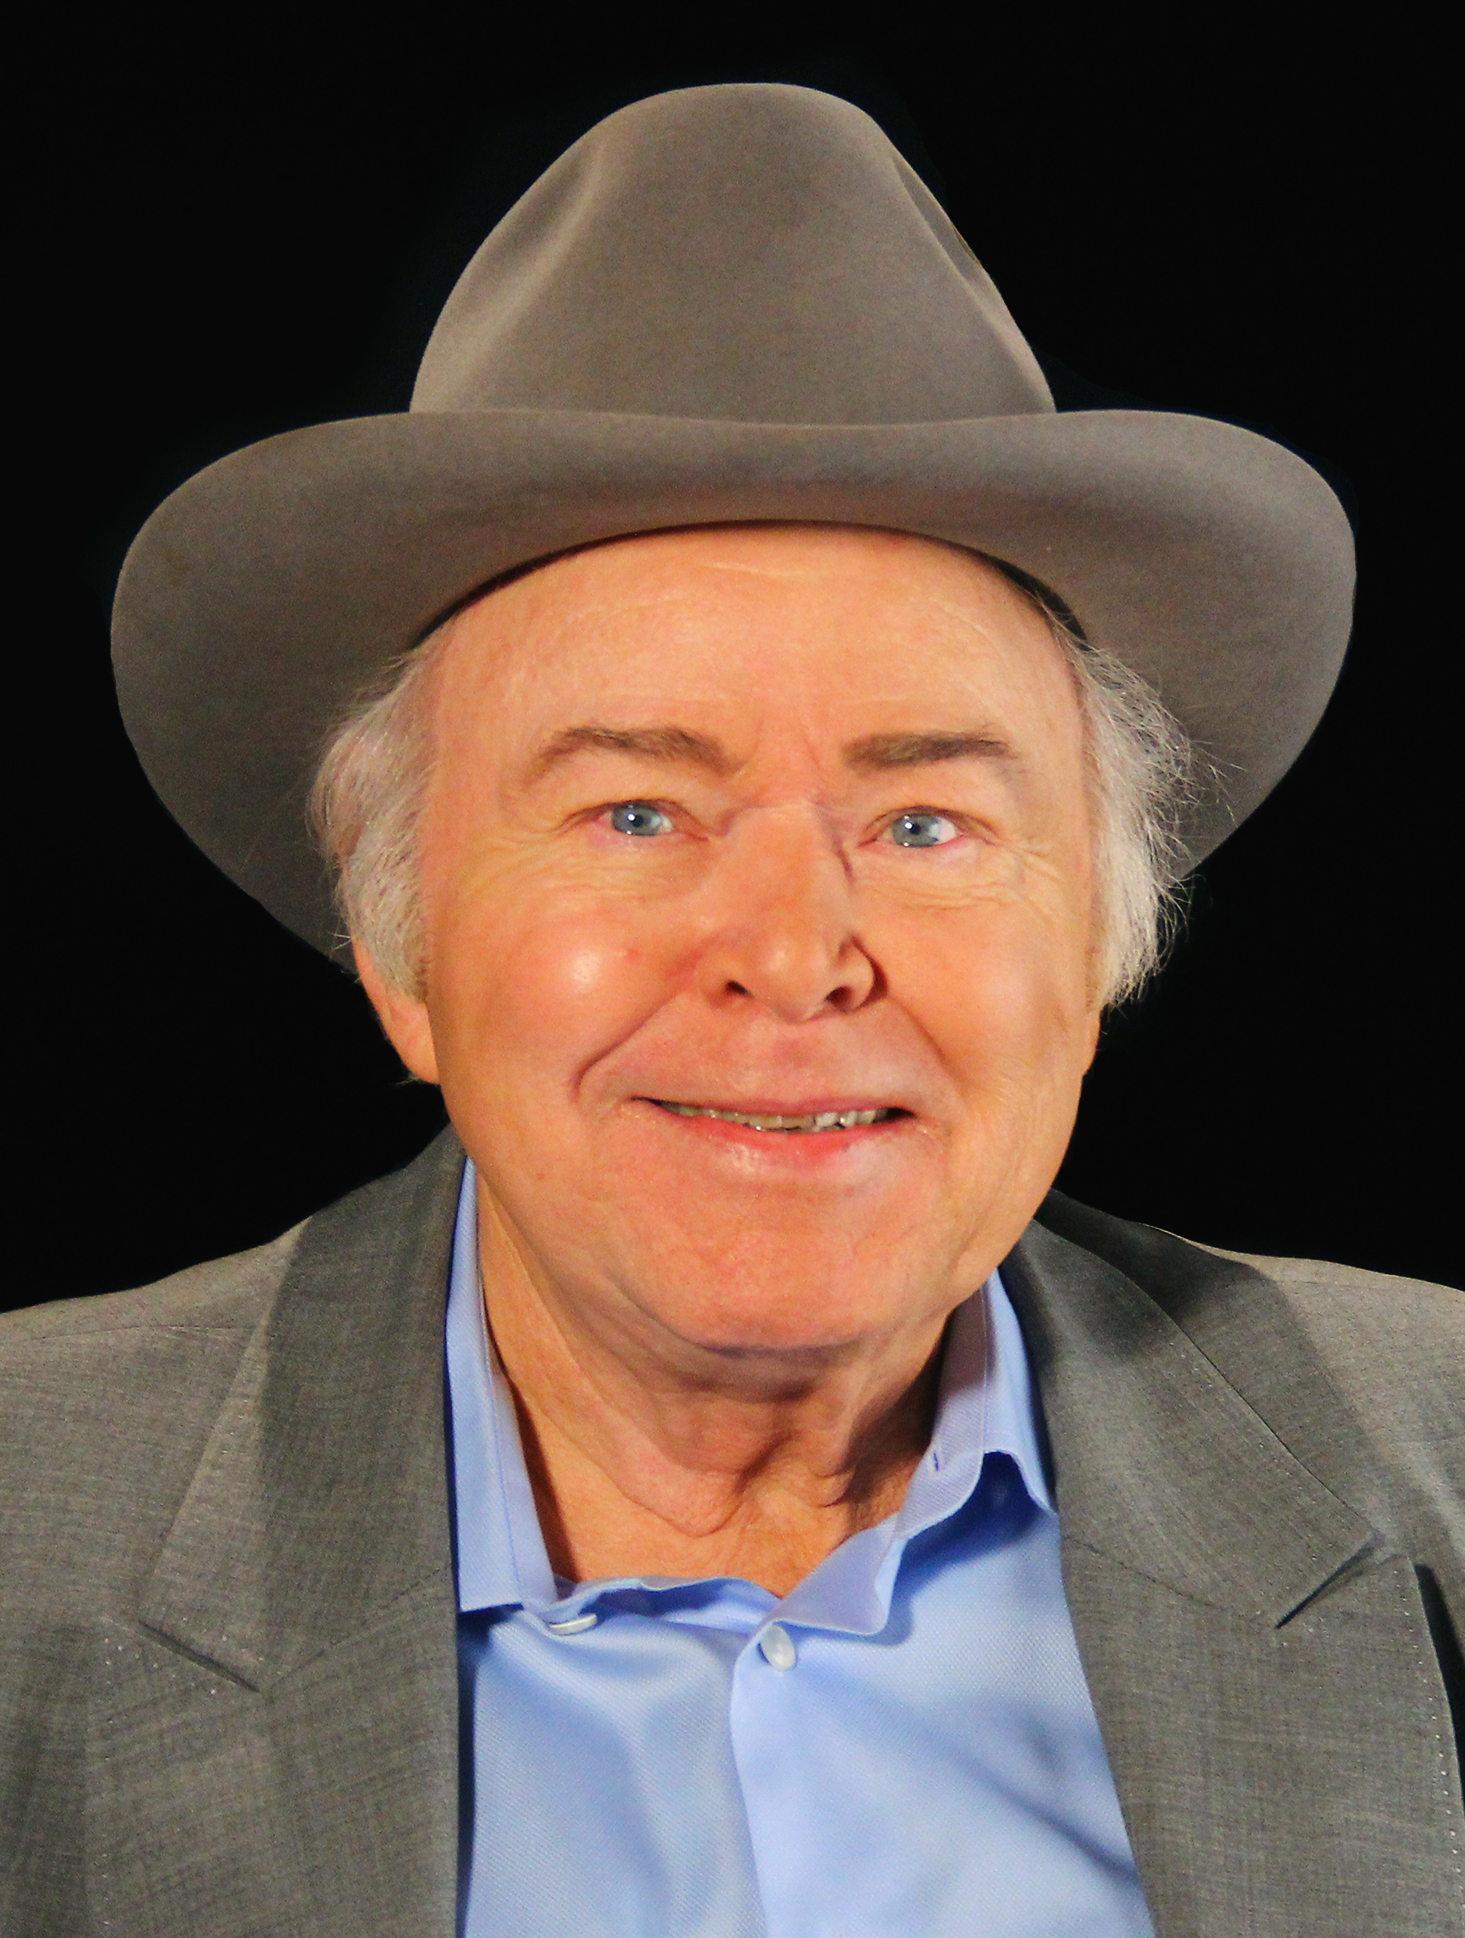 The 86-year old son of father (?) and mother(?) Roy Clark in 2019 photo. Roy Clark earned a  million dollar salary - leaving the net worth at 1000 million in 2019